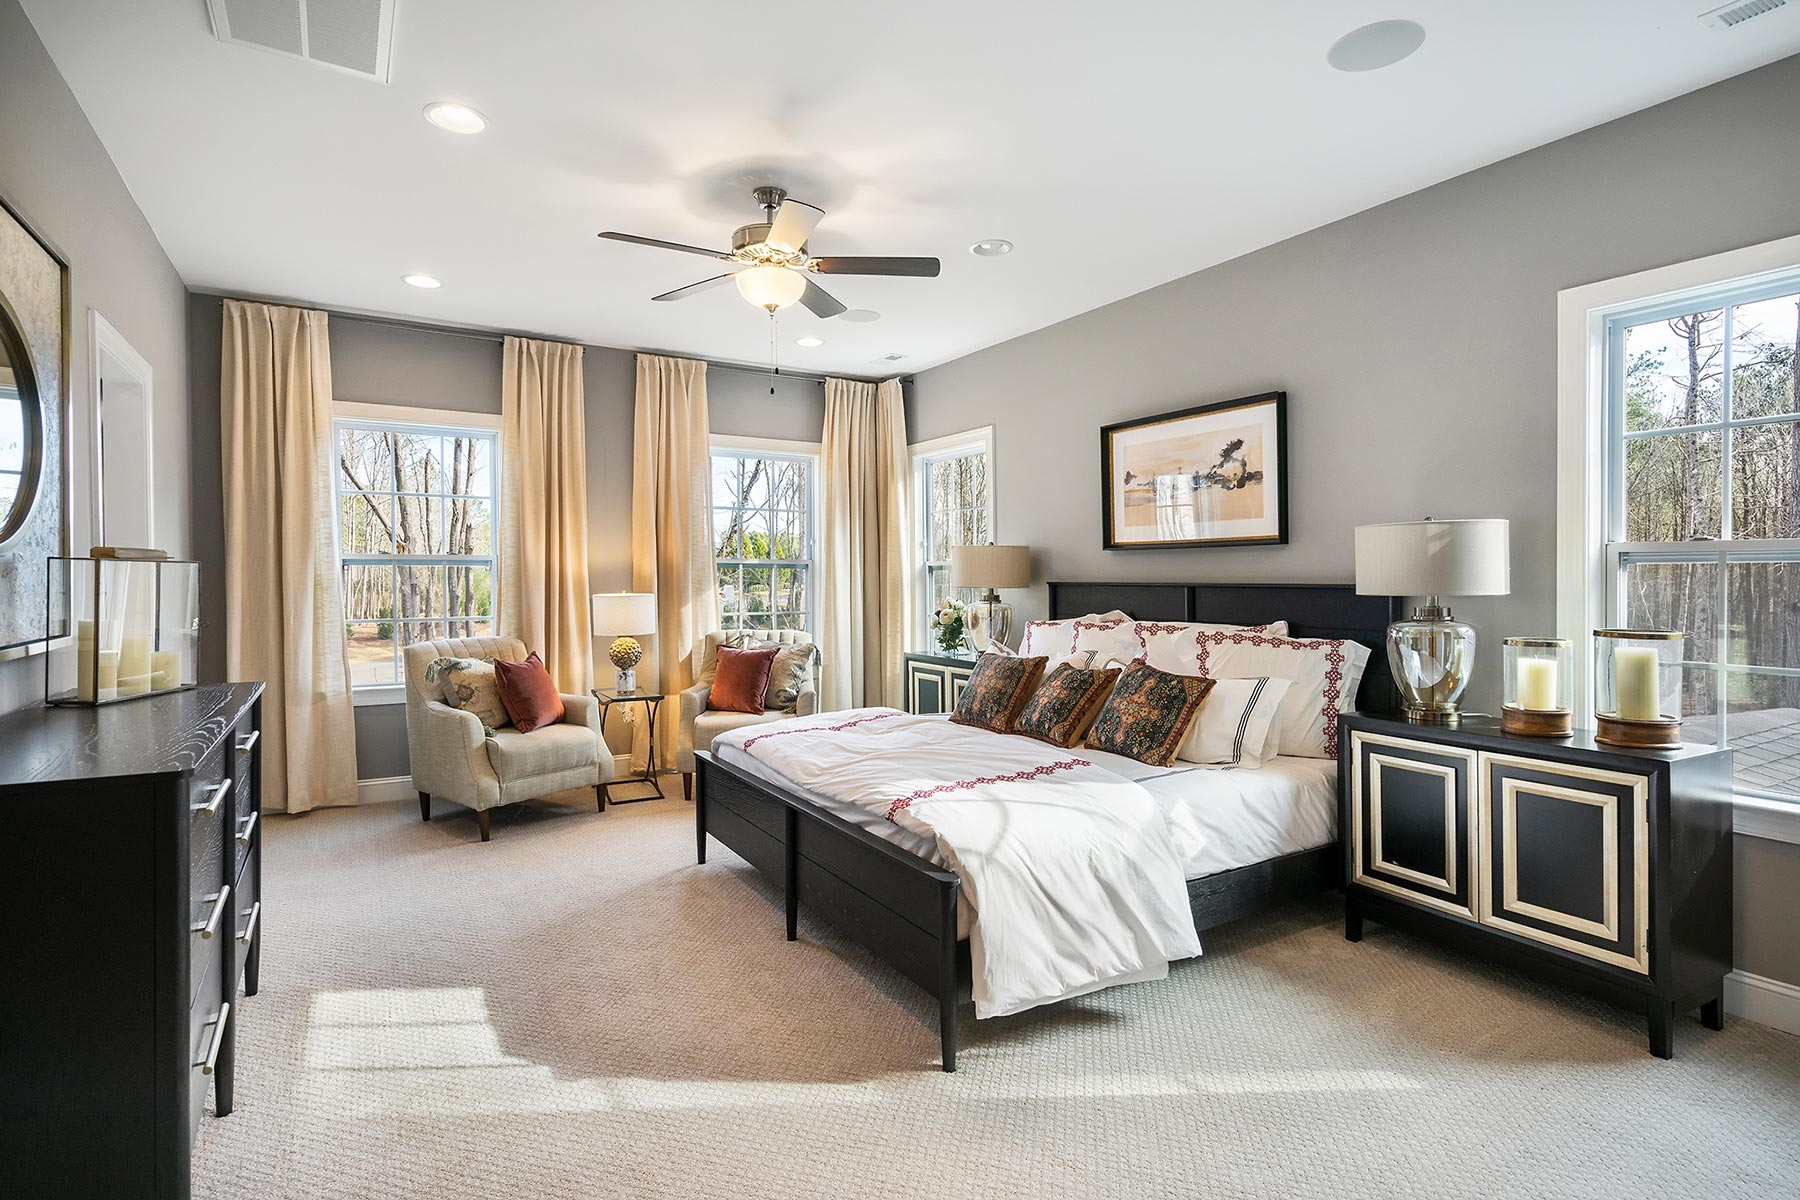 Edenton Plan Bedroom at Ballentine Place in Holly Springs North Carolina by Mattamy Homes